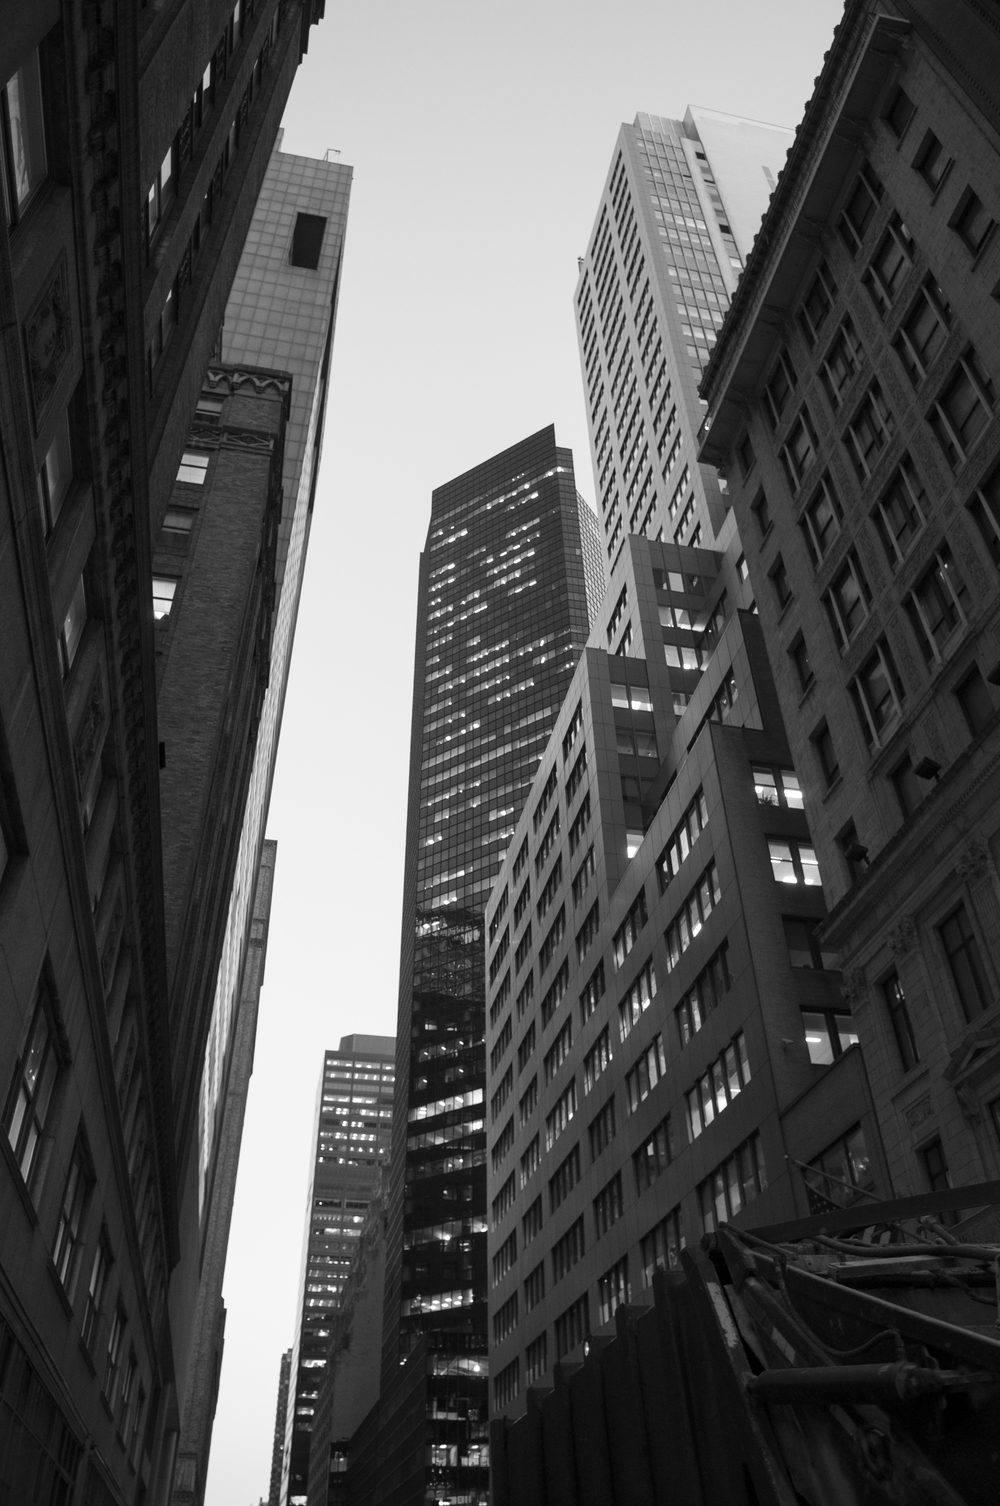 Day 11 - Midtown